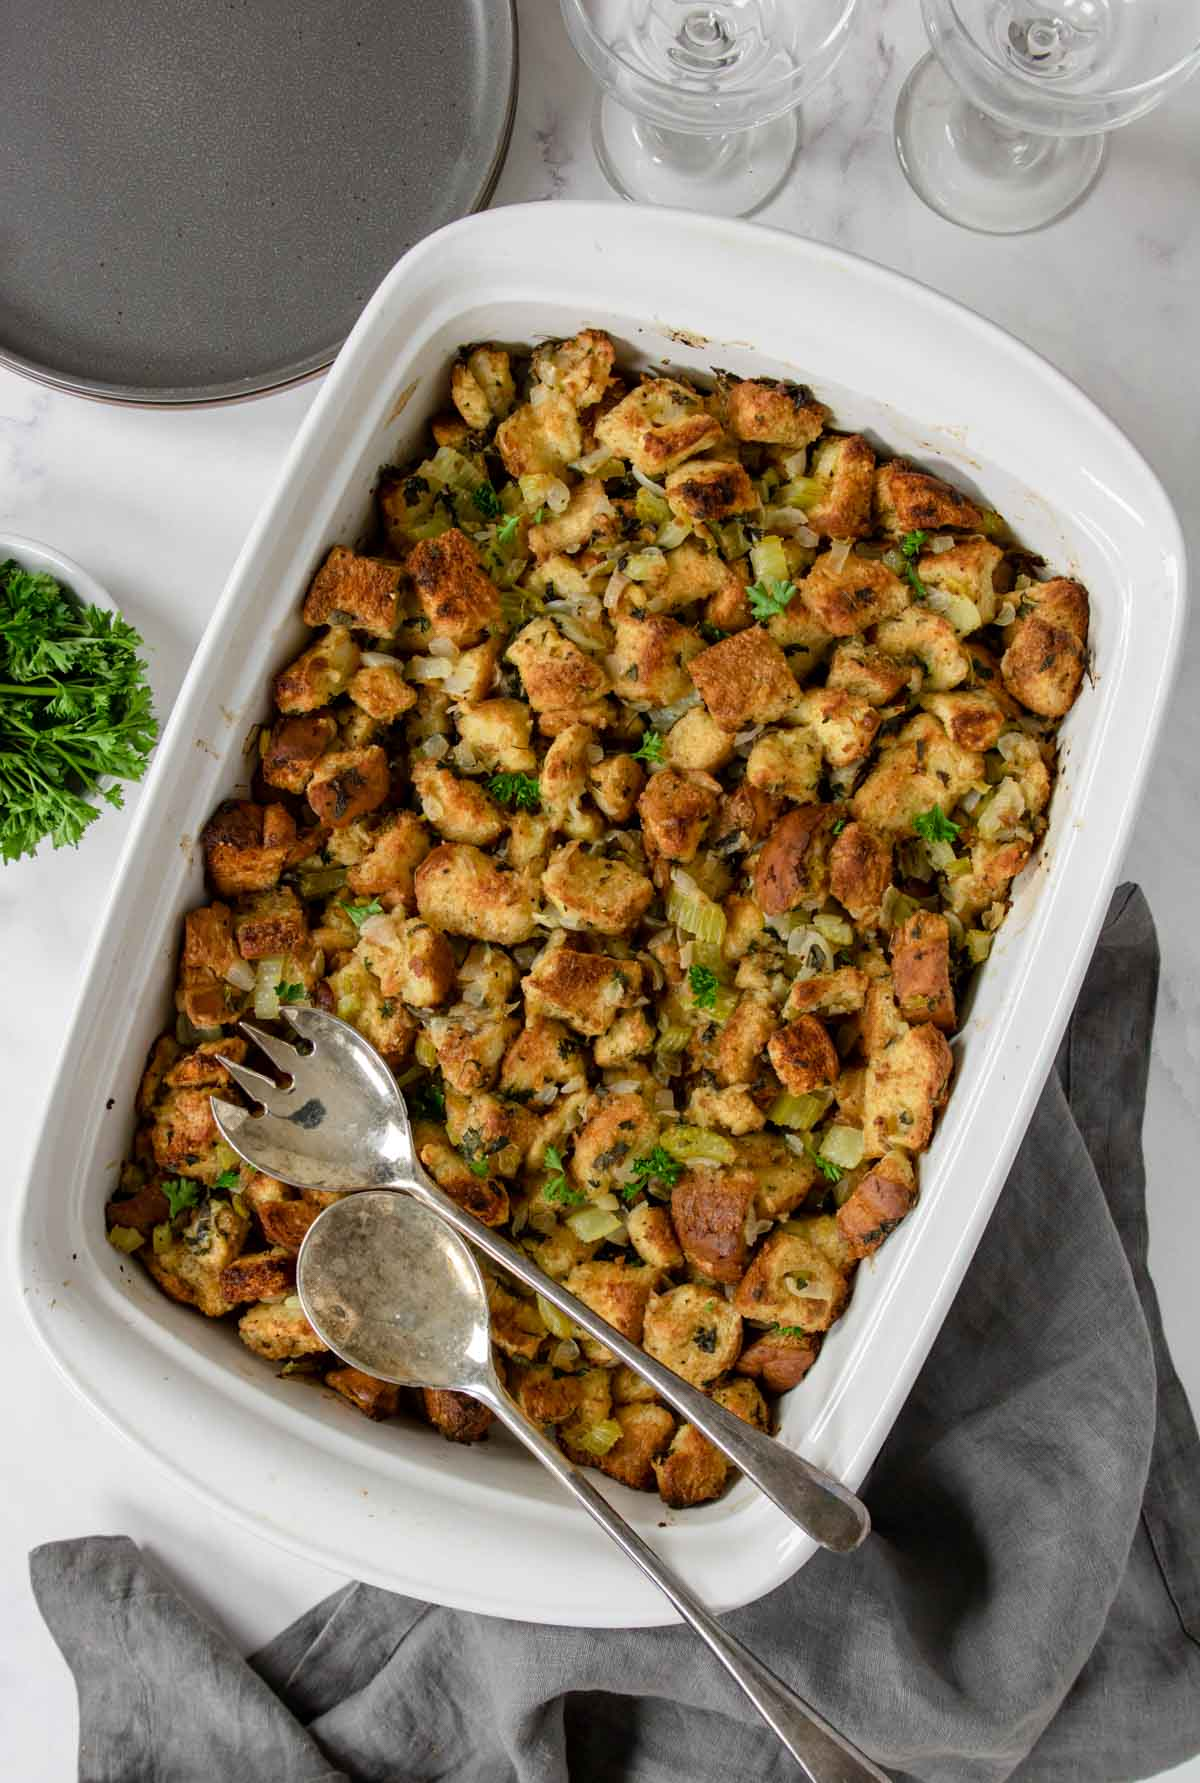 homemade bread stuffing in a baking dish with parsley garnish